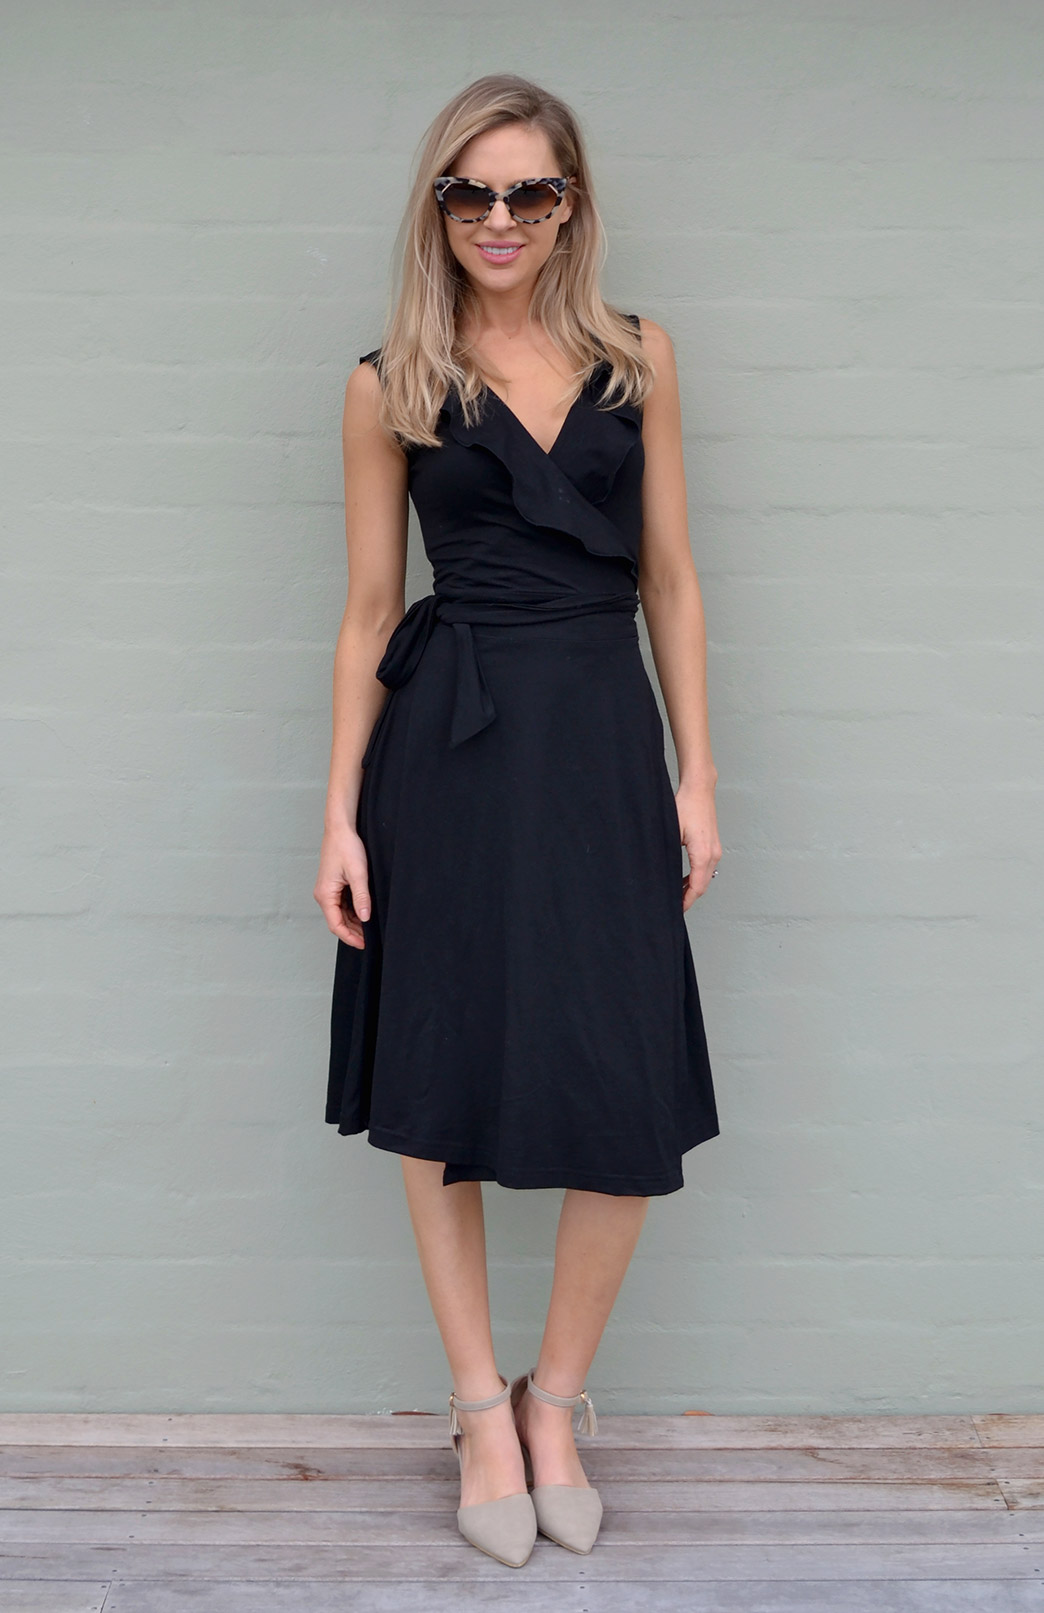 Ophelia Wrap Dress - Women's Summer Sleeveless Black Merino Wool Wrap Dress with Ruffled Collar - Smitten Merino Tasmania Australia